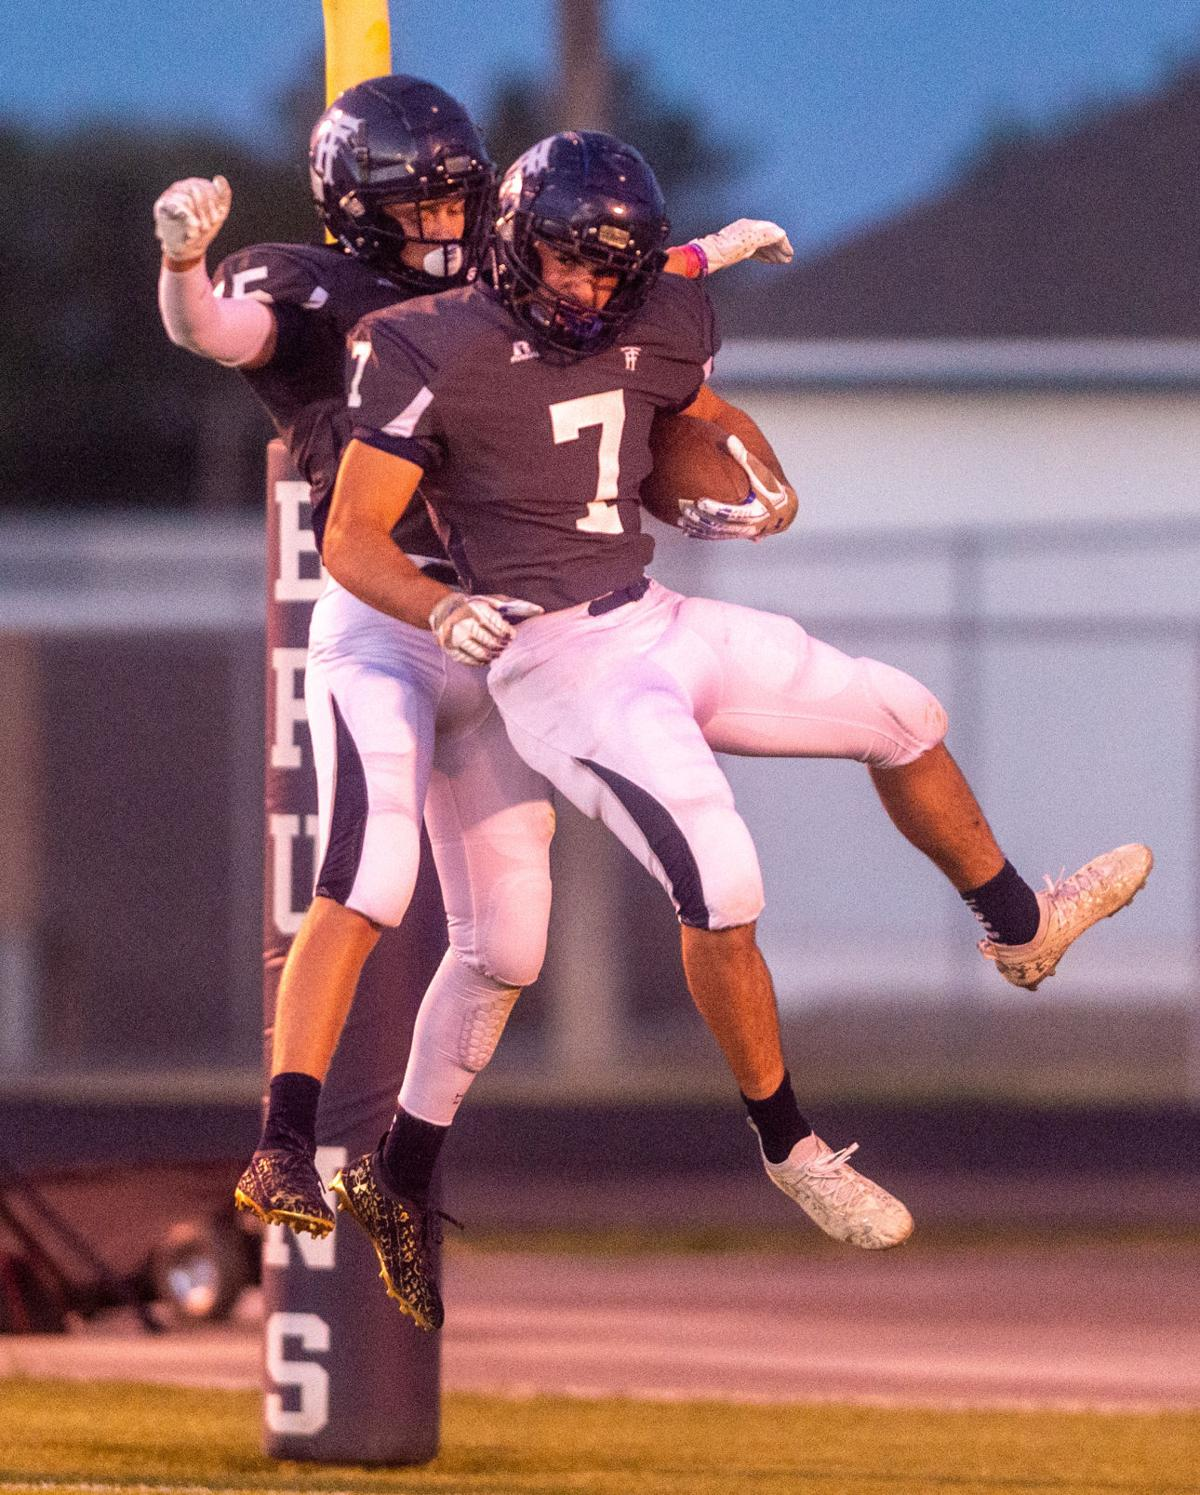 Wood River and Twin Falls battle it out in conference play